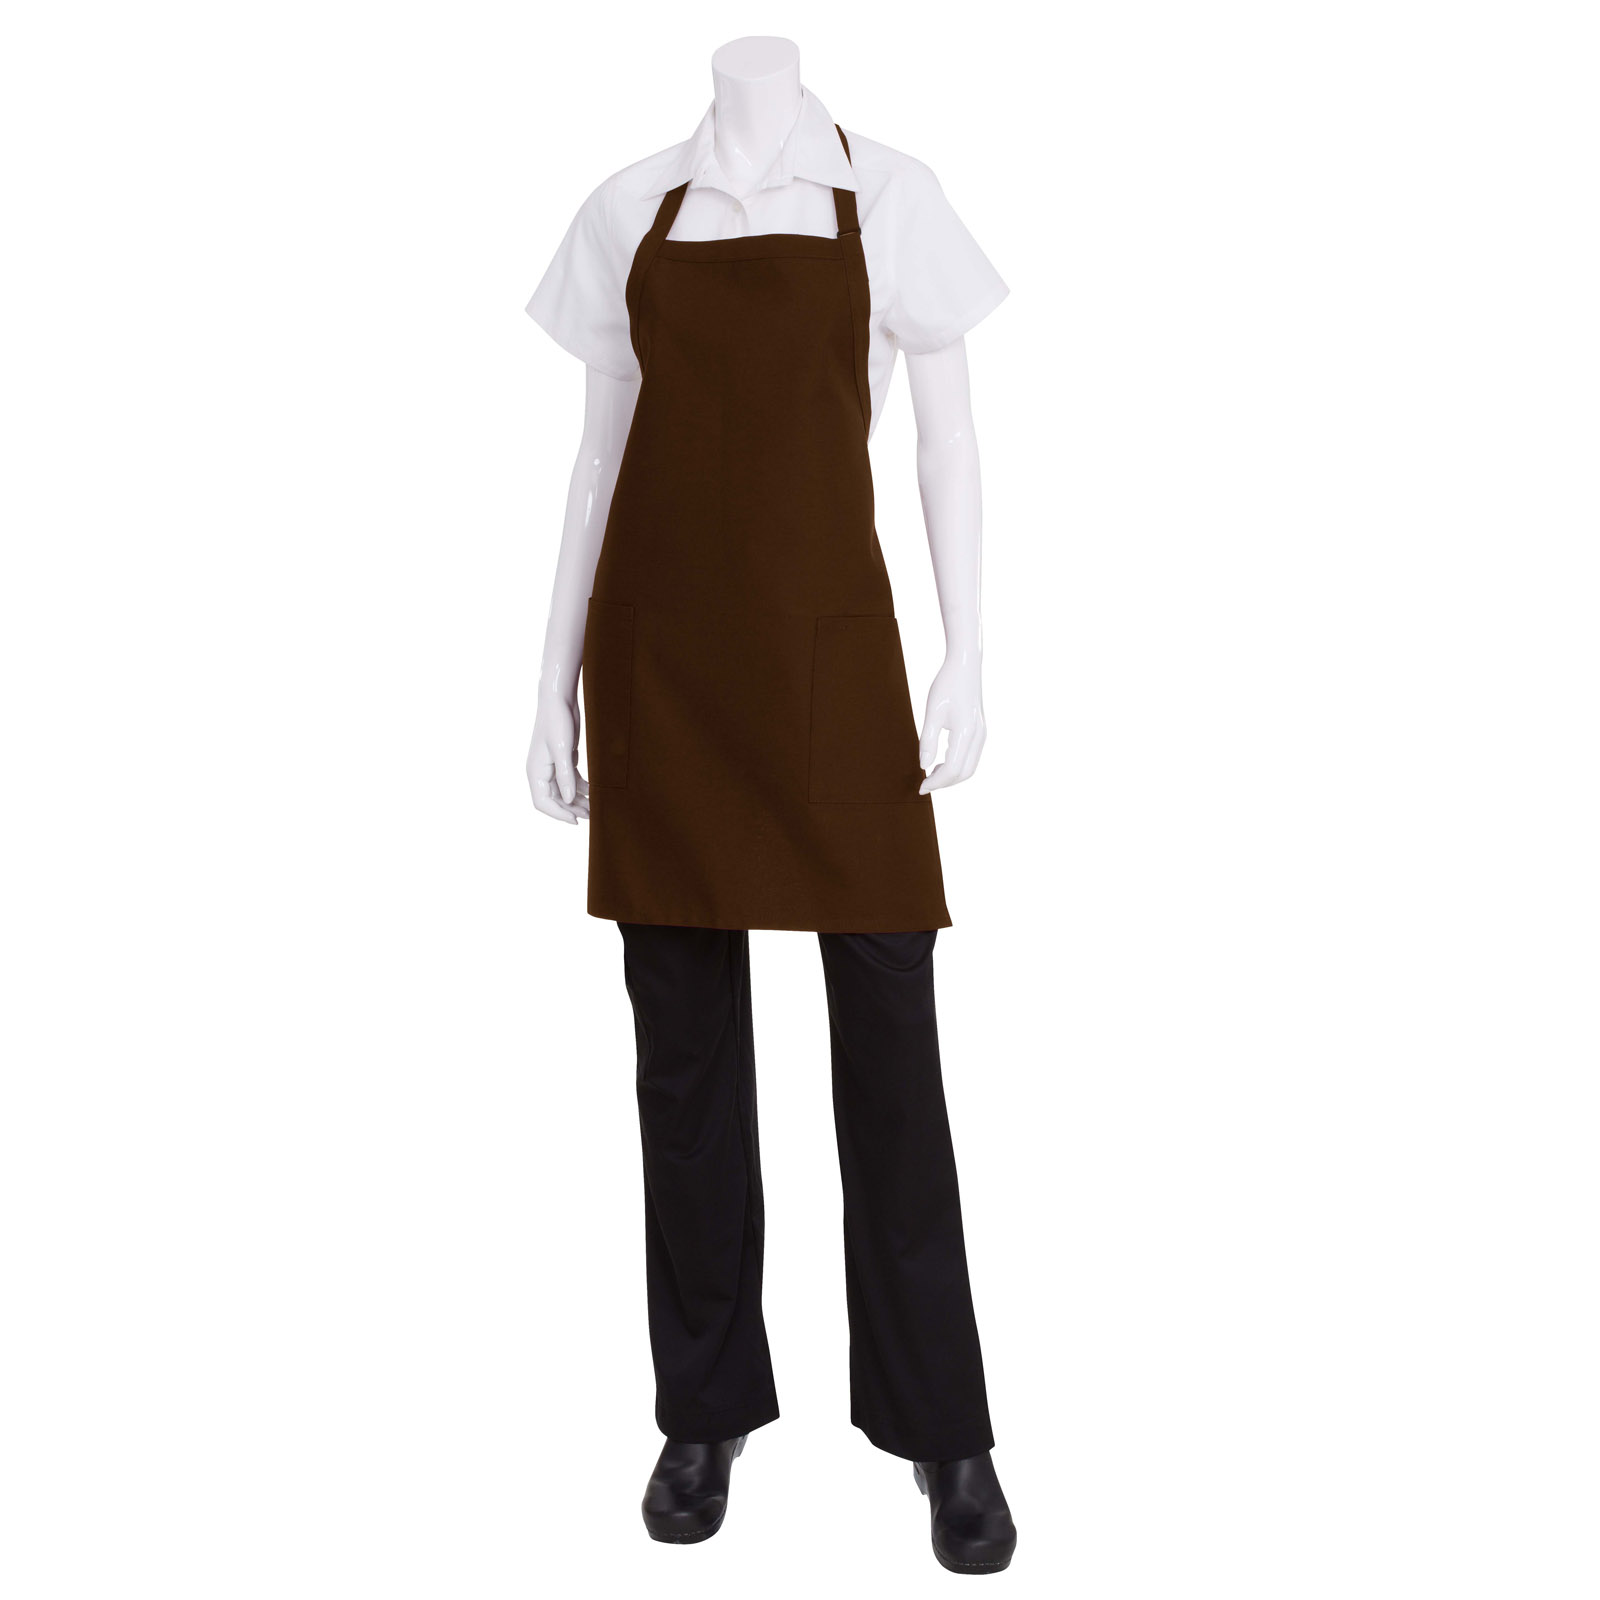 Chef Works F53 BLK0 bib apron